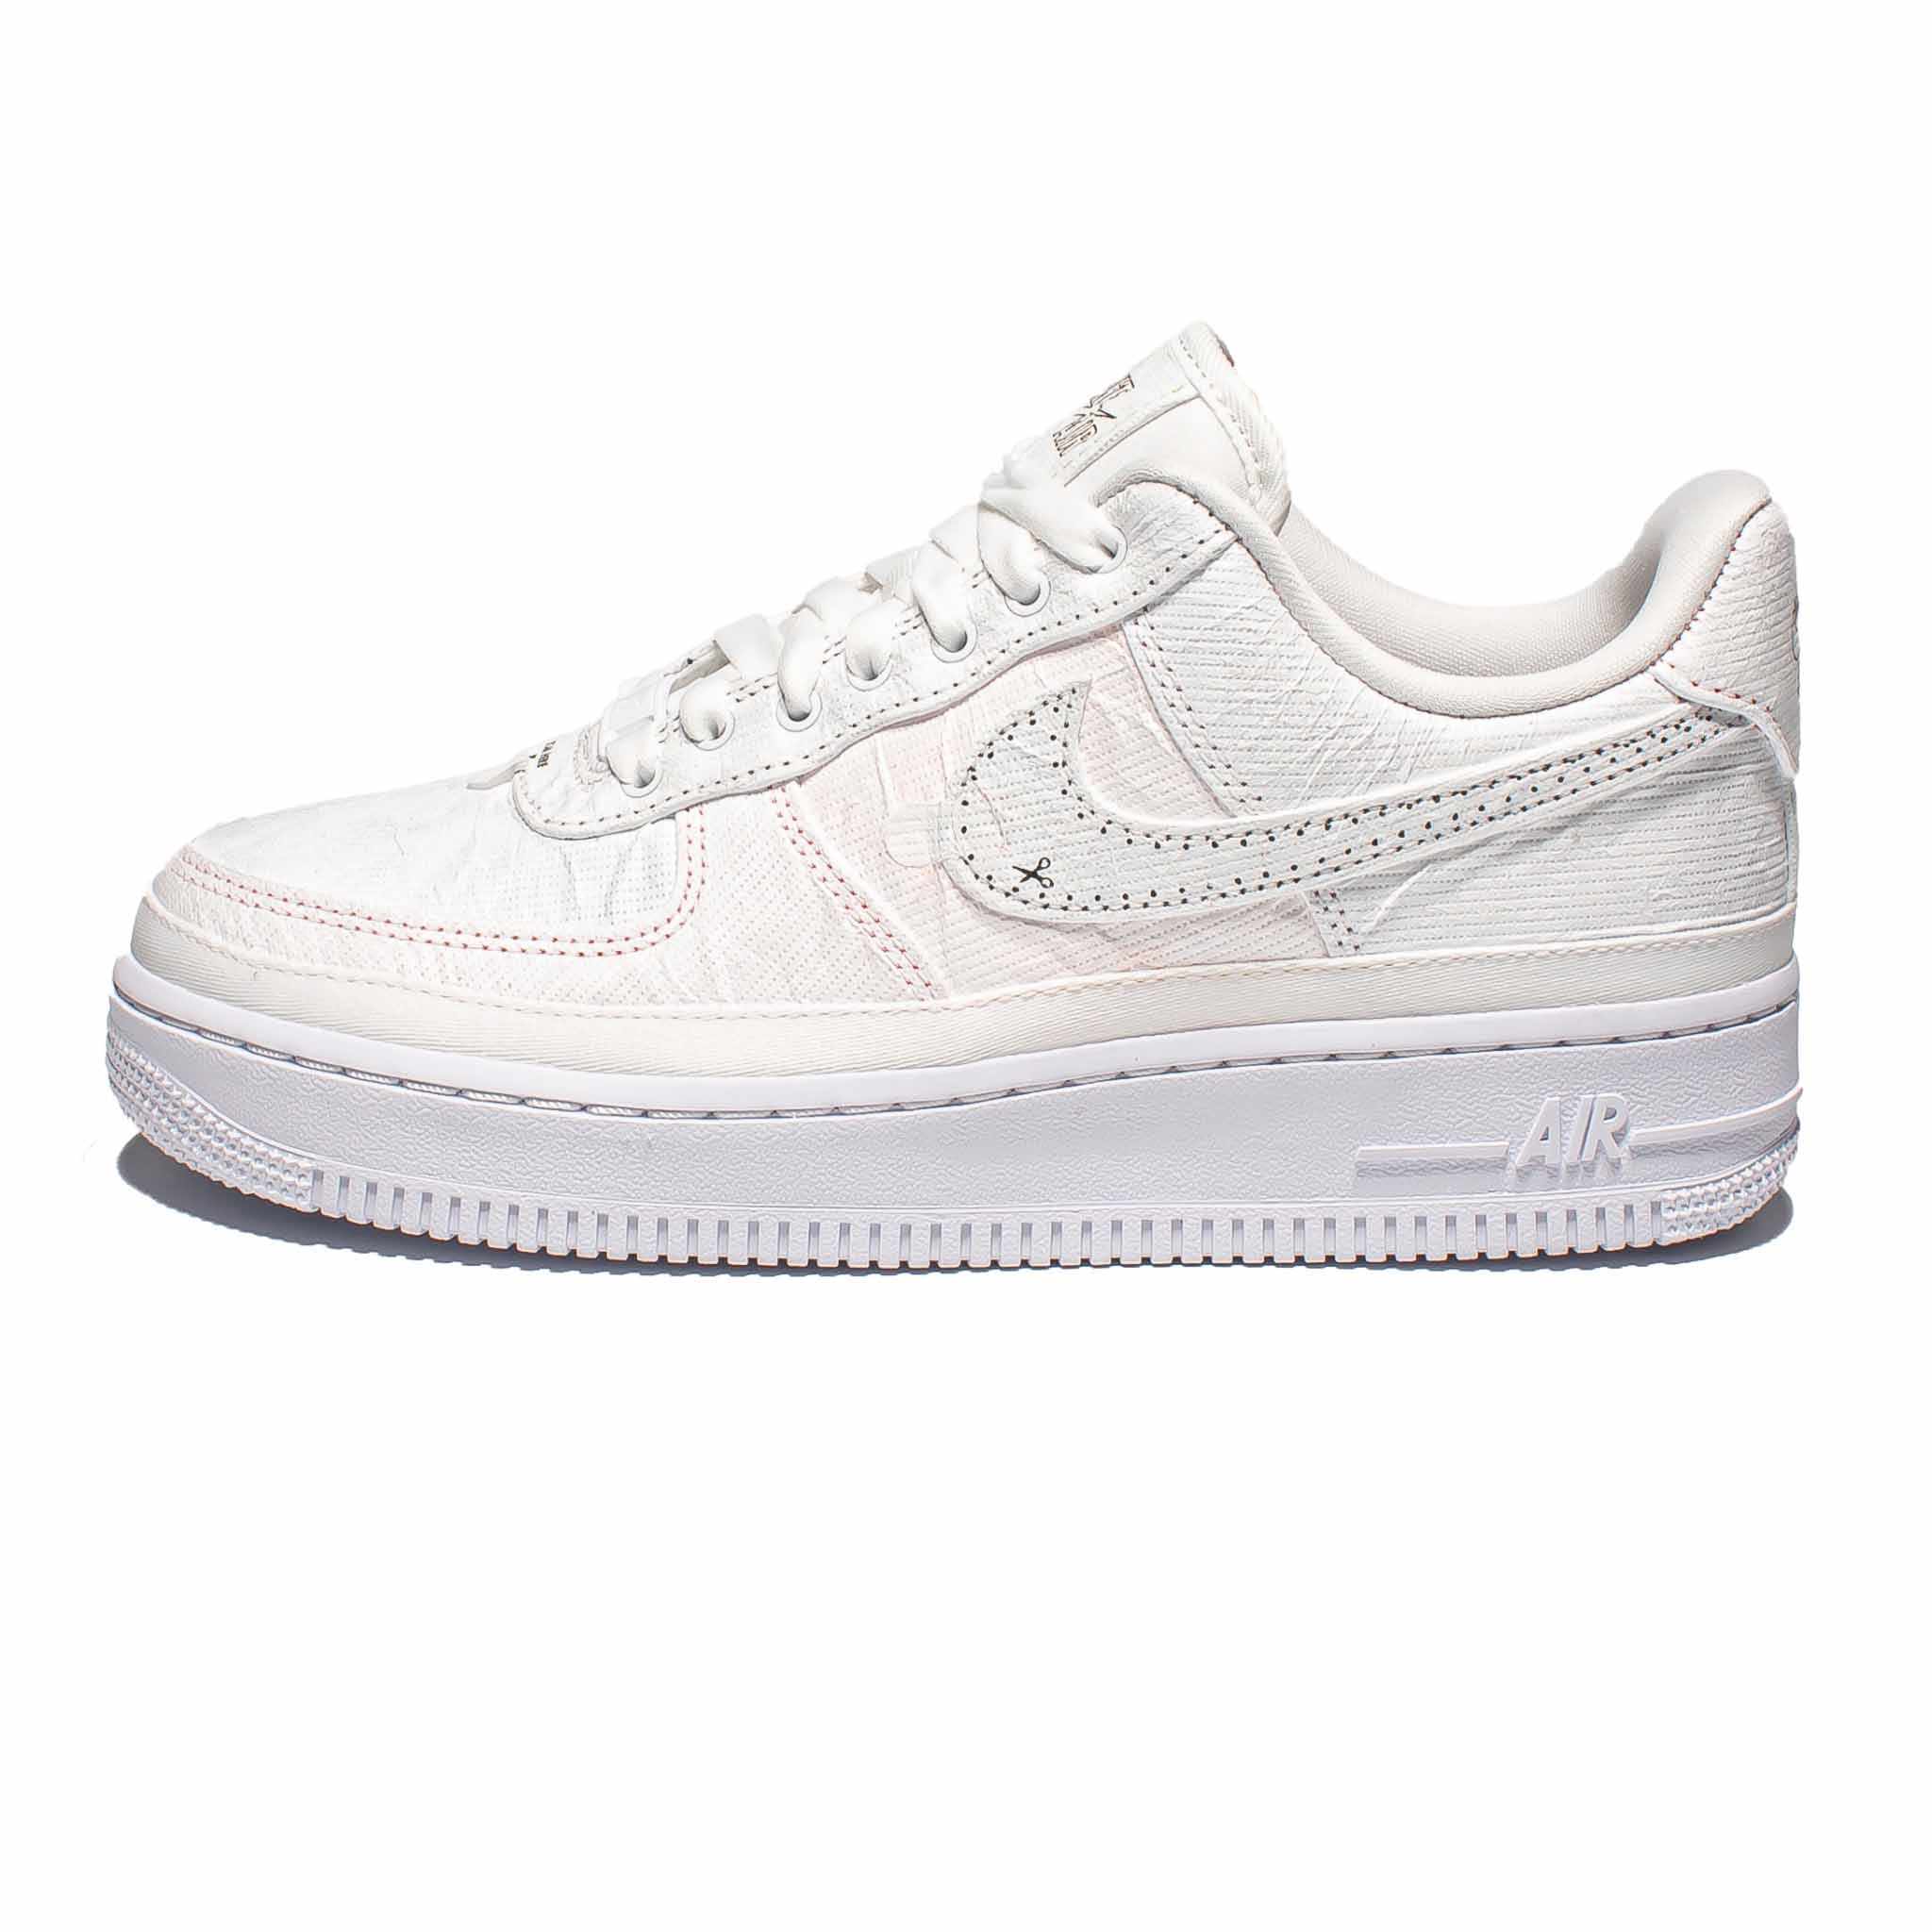 Nike Air Force 1 '07 Low LX 'Reveal'